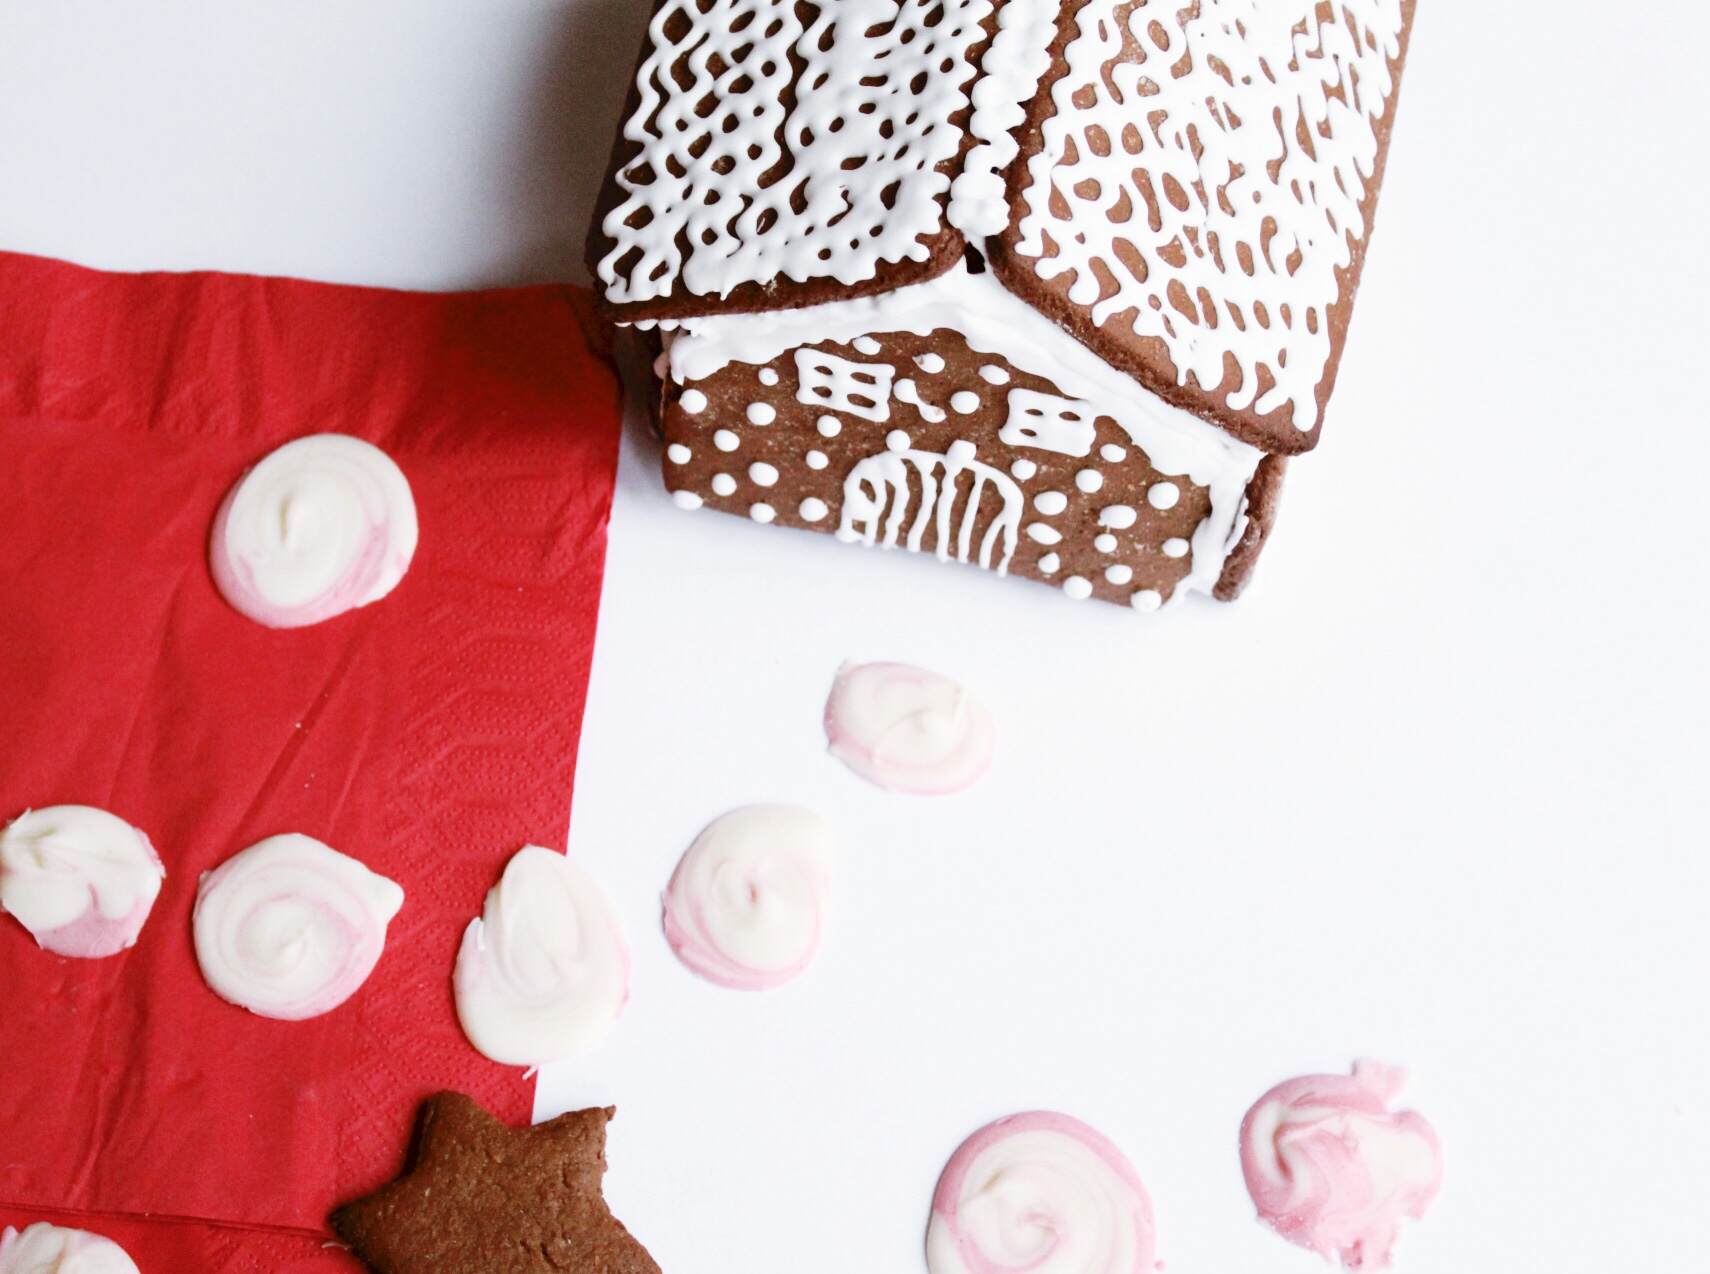 gingerbread and peppermint candies